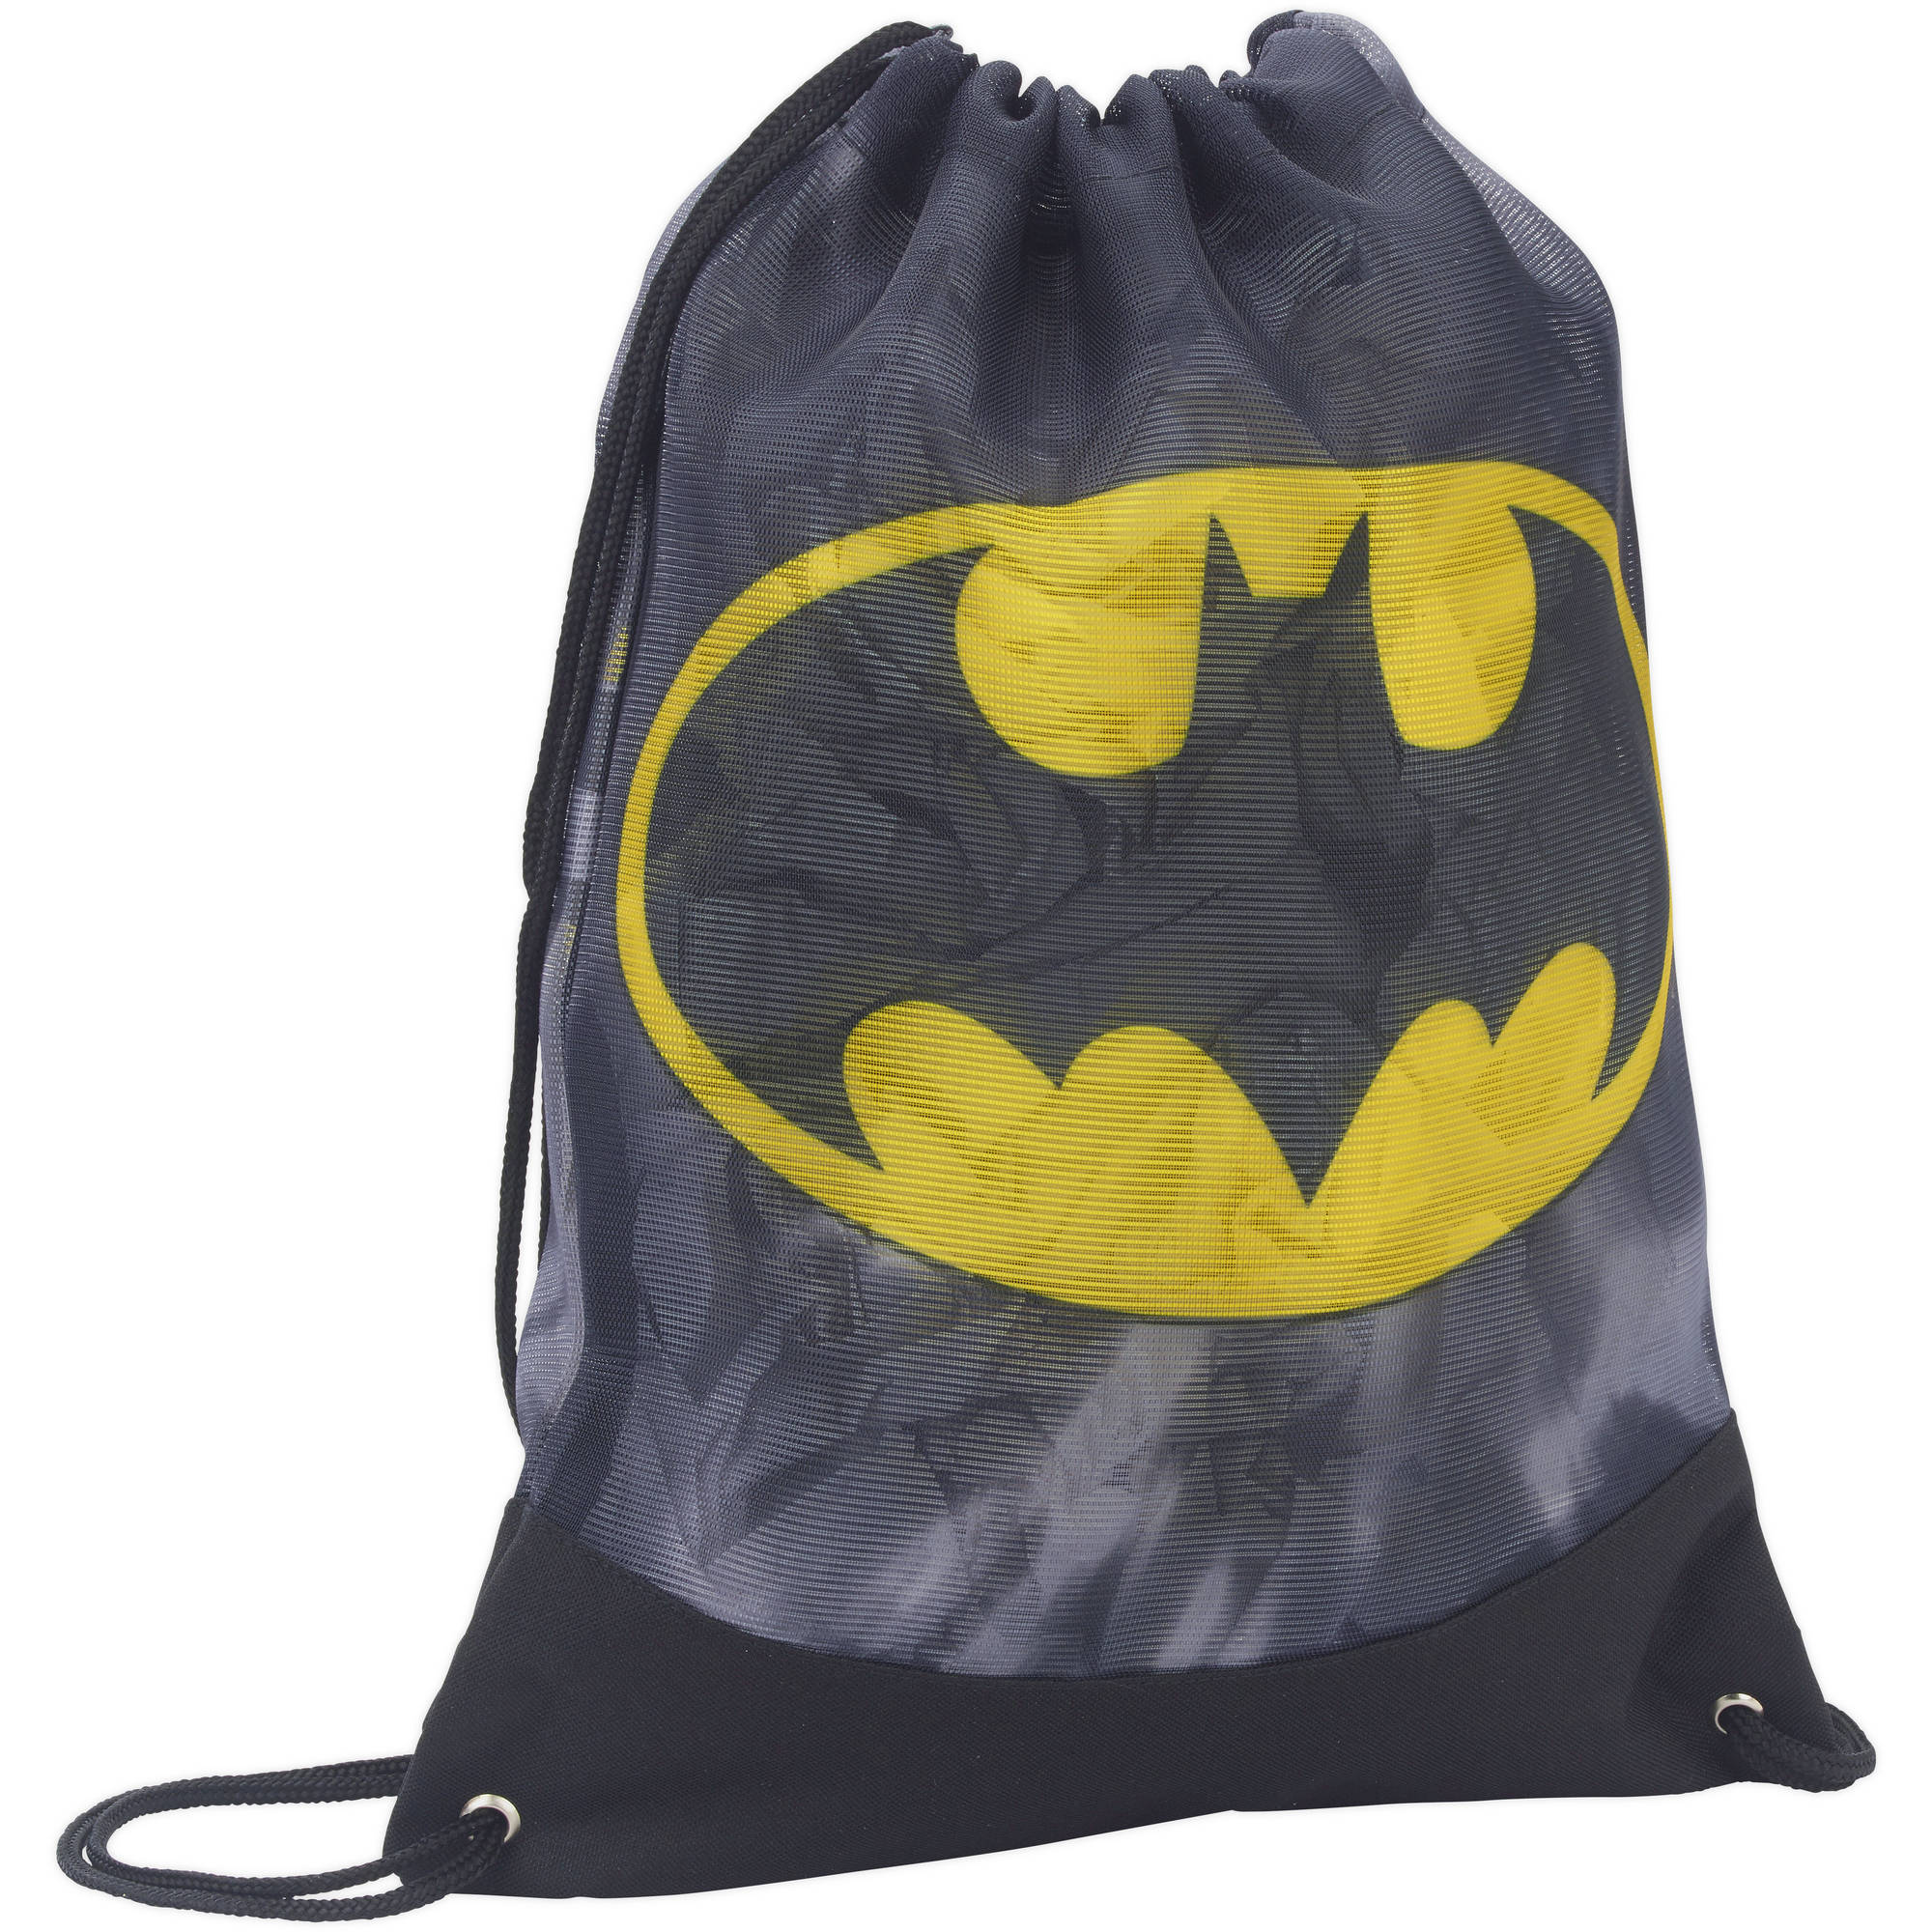 Mesh Cinch Bag-batman - Walmart.com